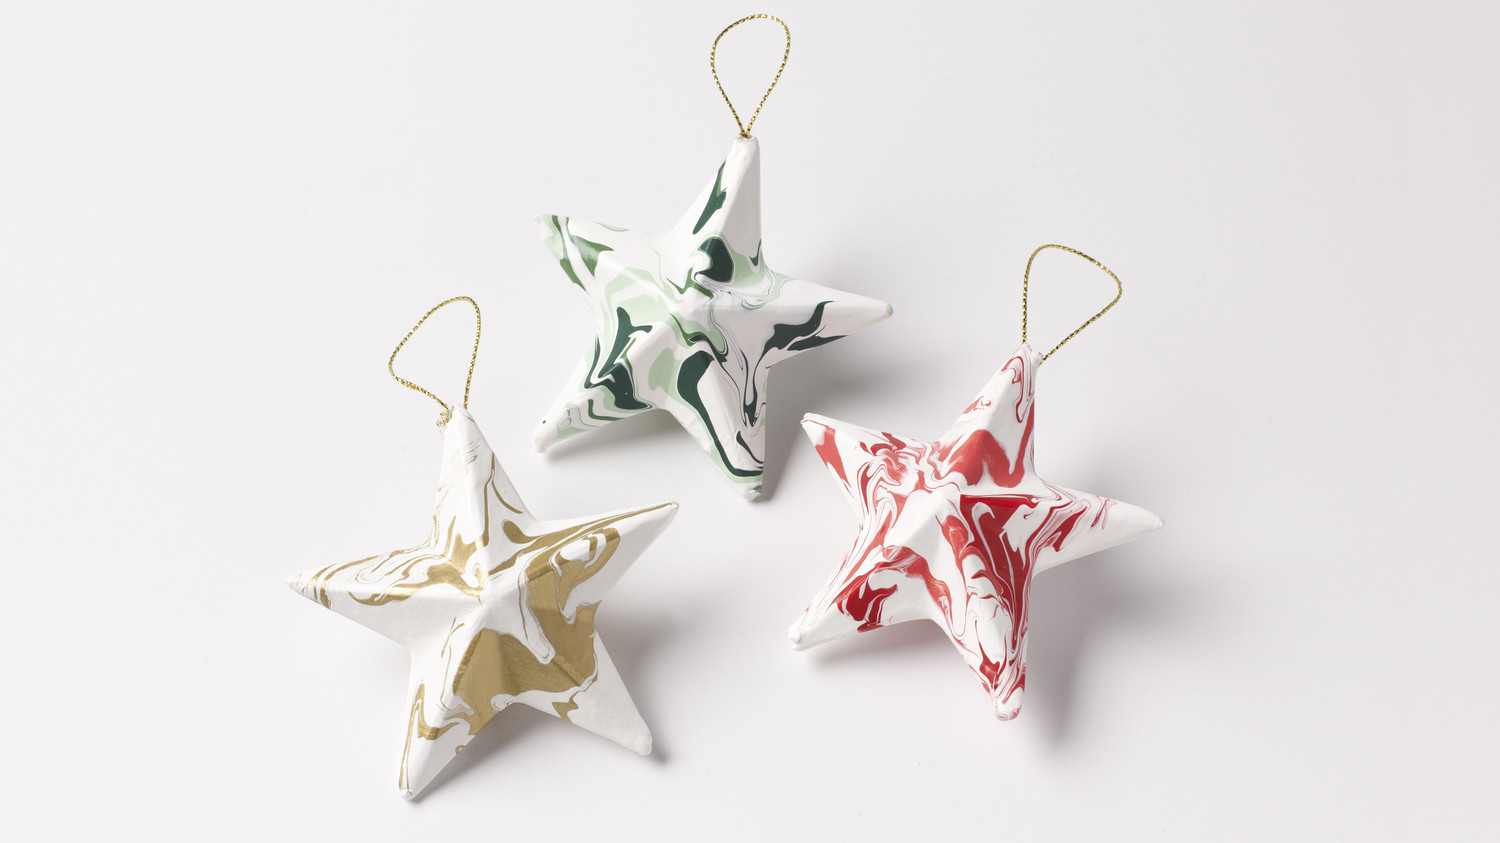 Marbleized Star Ornaments